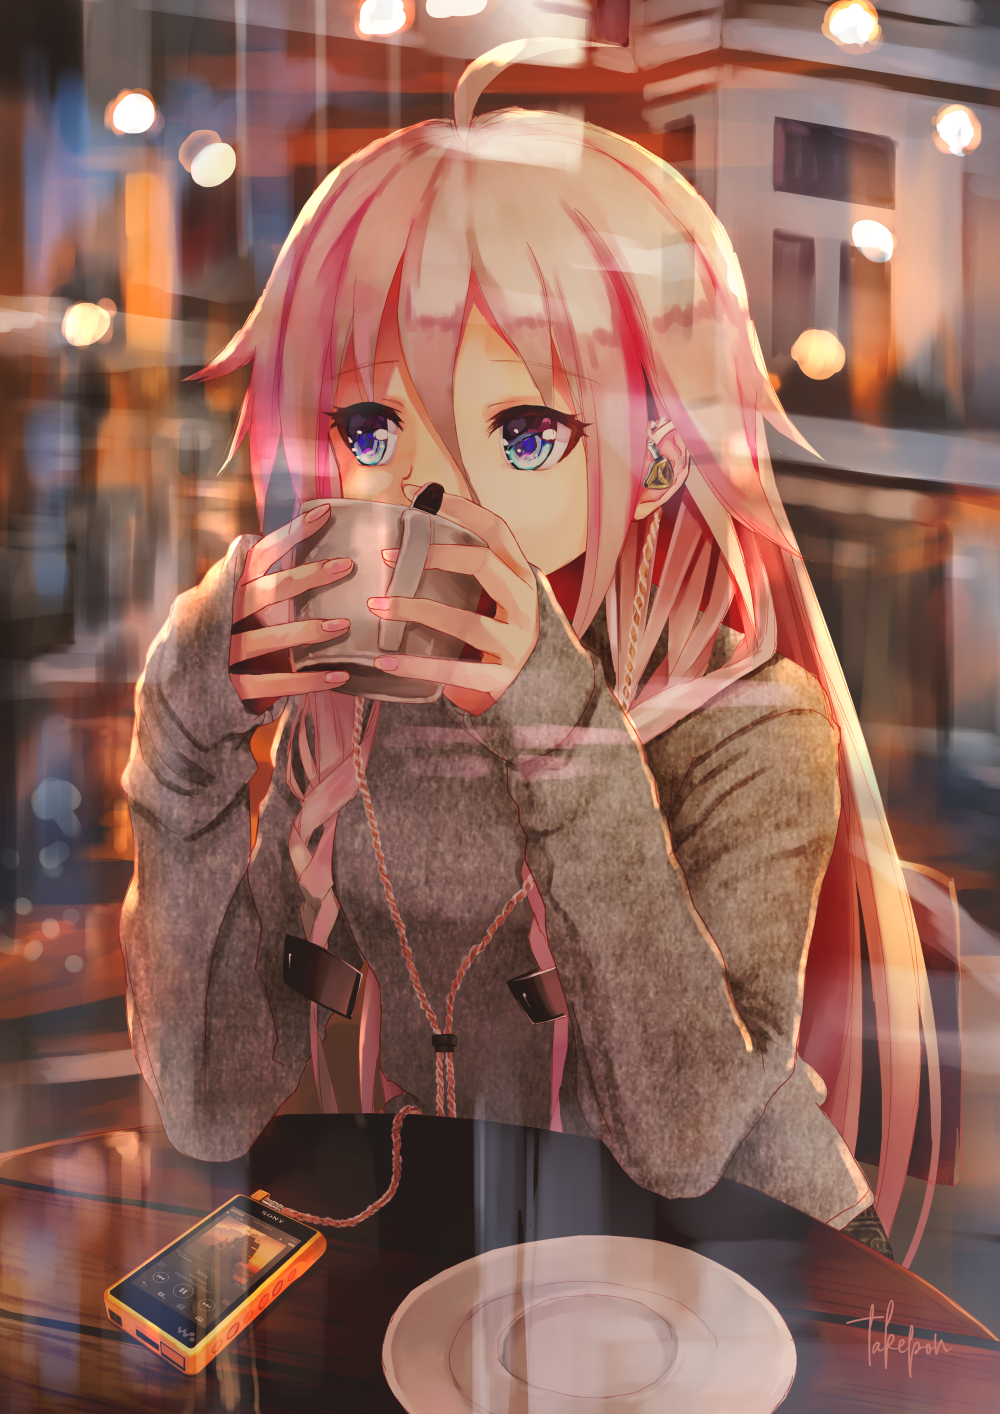 1girl ahoge alternate_costume bangs blonde_hair braid cable cafe casual commentary cup digital_media_player earphones english_commentary eyebrows_visible_through_hair from_outside grey_sweater hair_between_eyes highres holding holding_cup ia_(vocaloid) indoors long_hair long_sleeves multicolored_hair nail_polish pink_hair pink_nails reflection saucer sitting sleeves_past_wrists solo sweater table takepon1123 teacup twin_braids two-tone_hair upper_body very_long_hair vocaloid